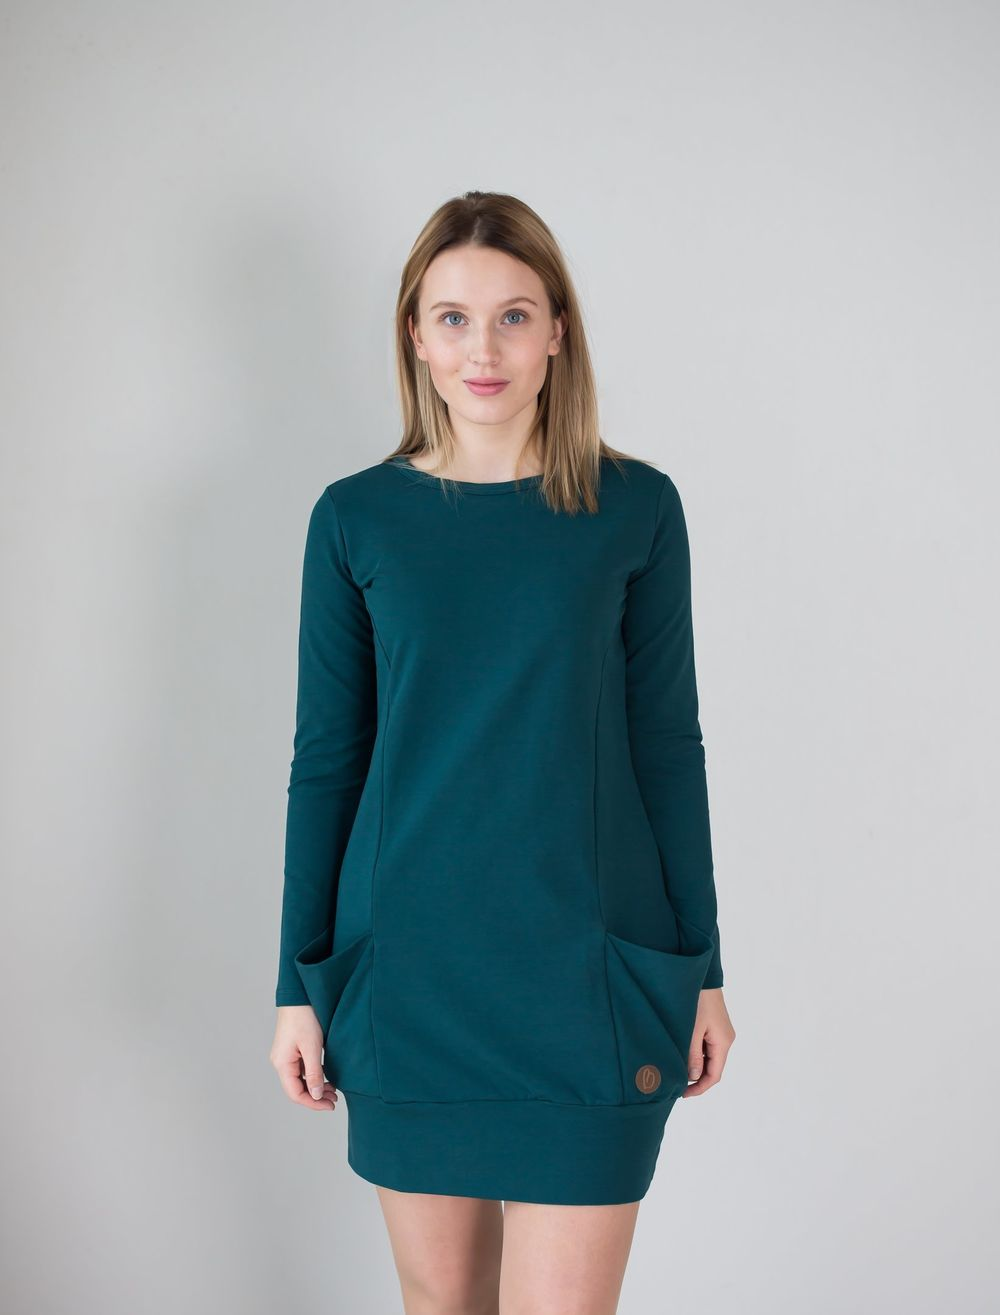 BLAA MAINE TUNIC, DEEP TEAL